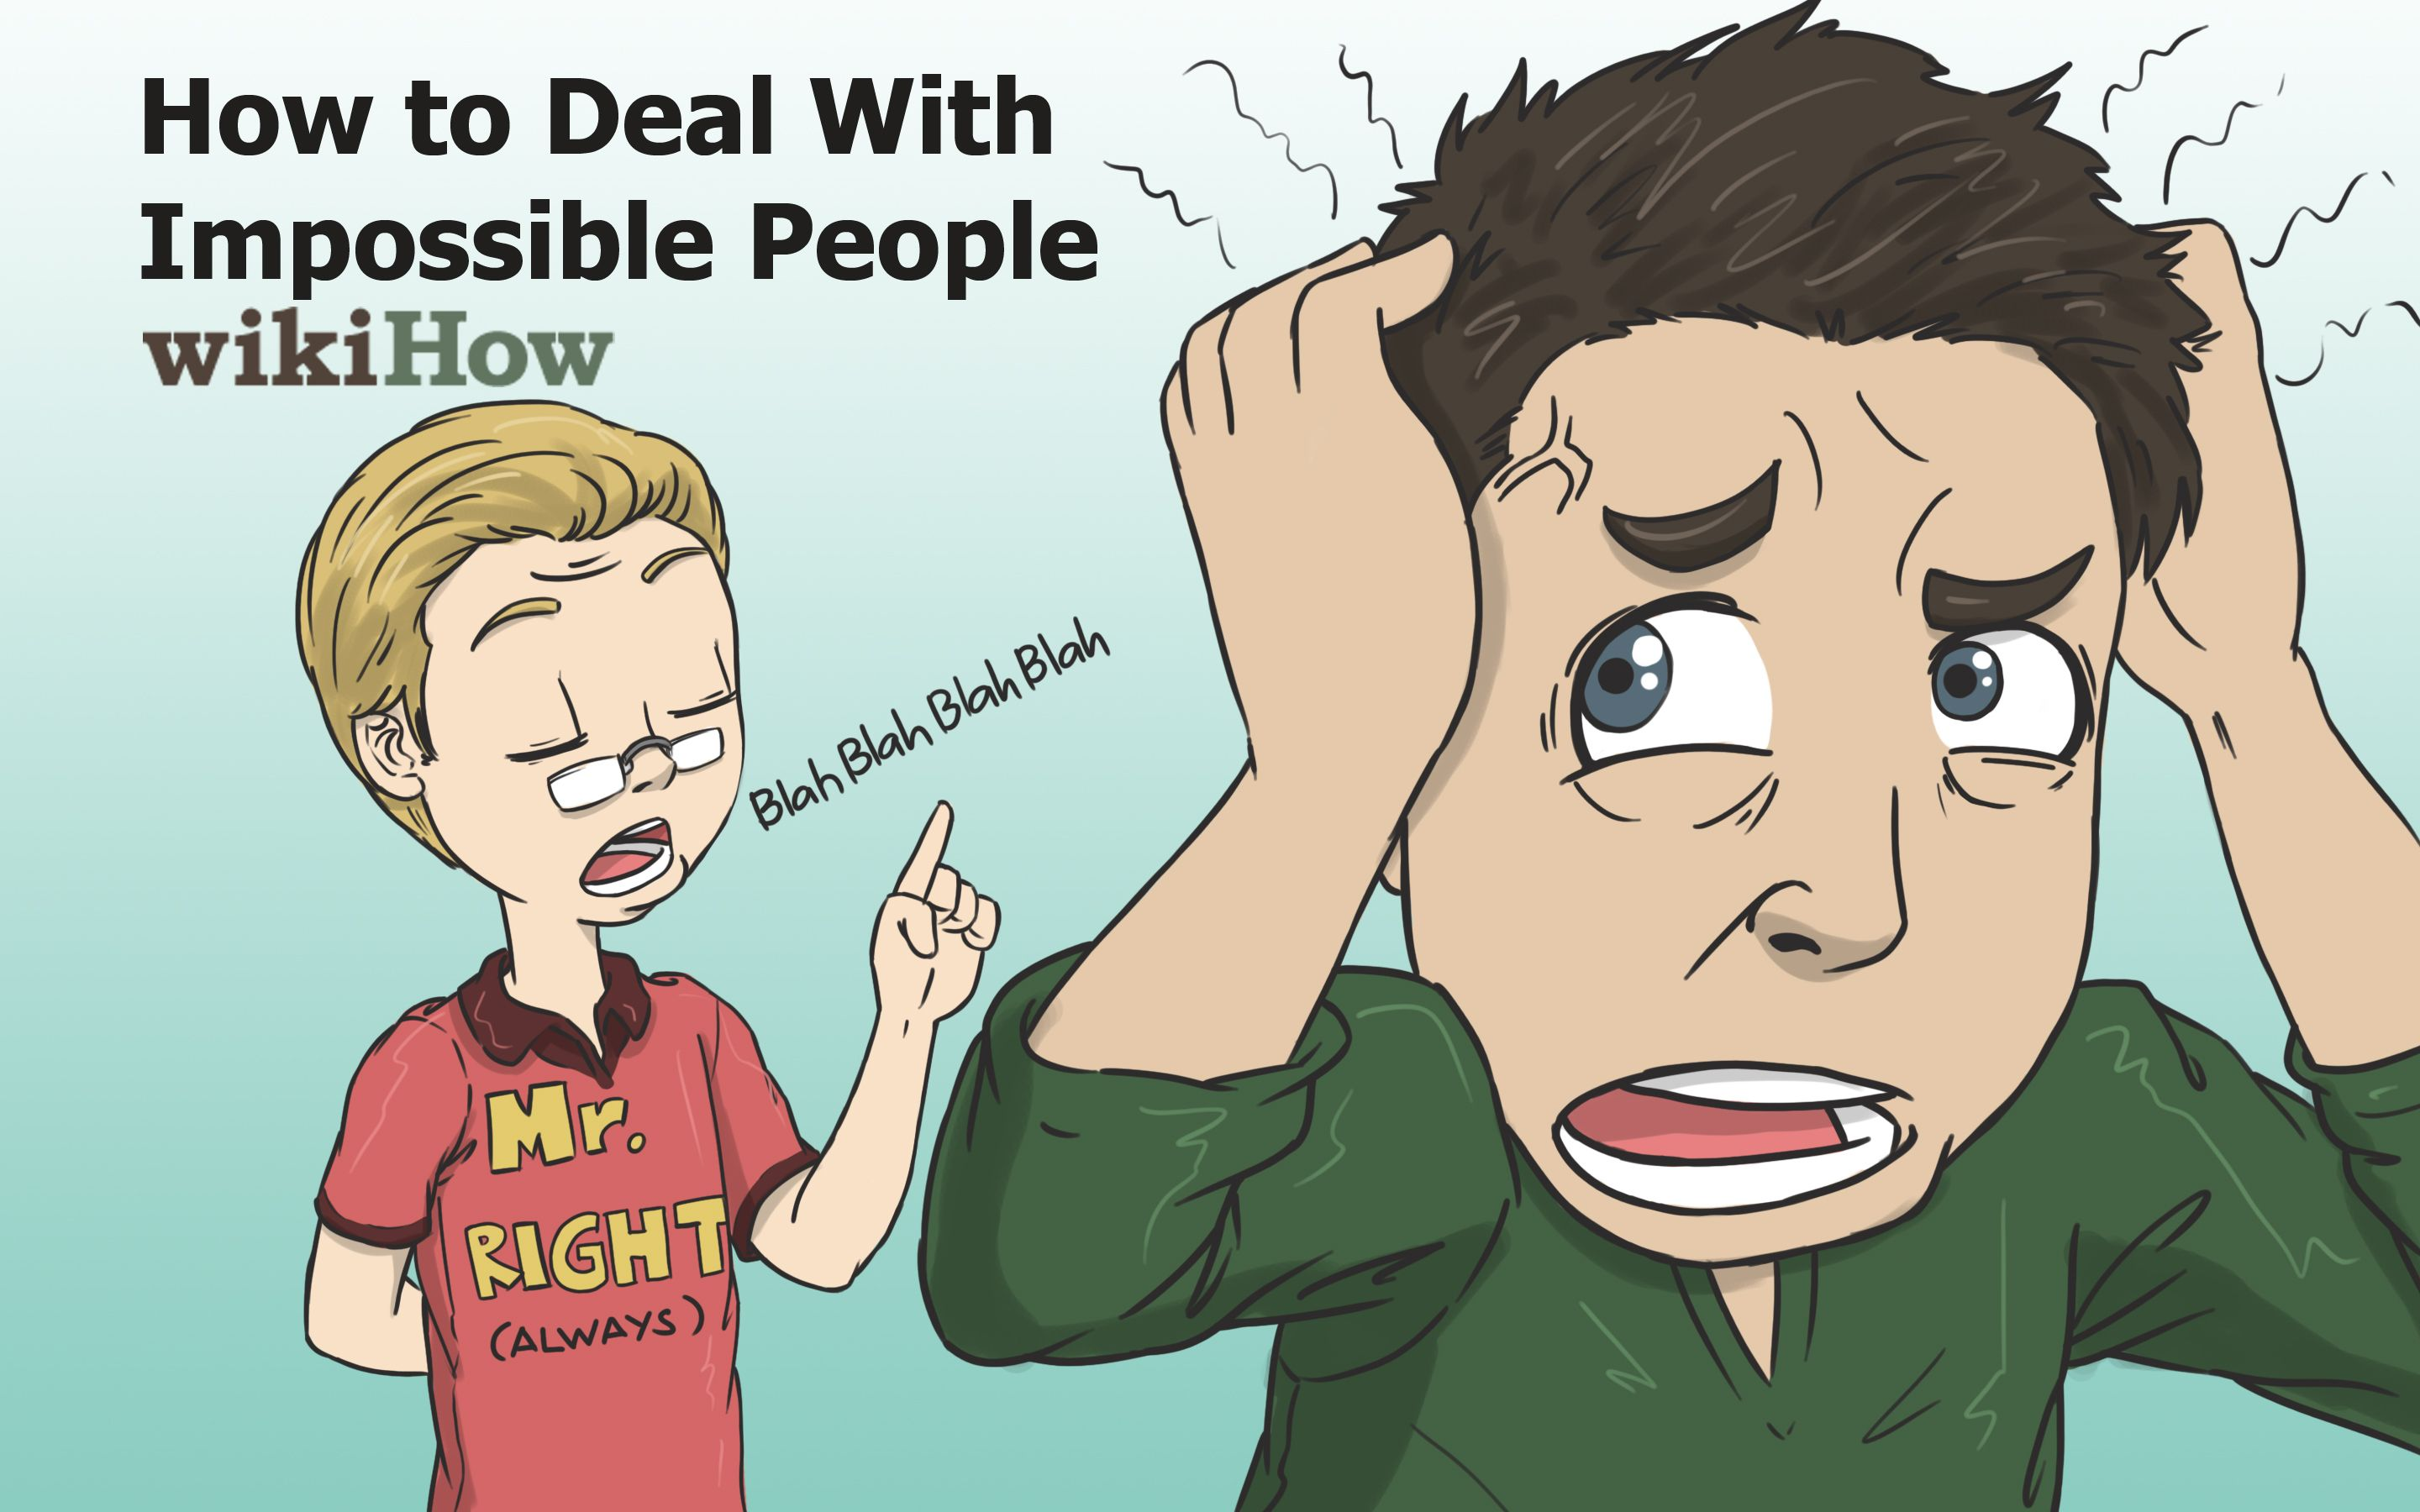 Deal with impossible people wikihow tips tricks pinterest people wikihow to deal with impossible people via wikihow ccuart Gallery